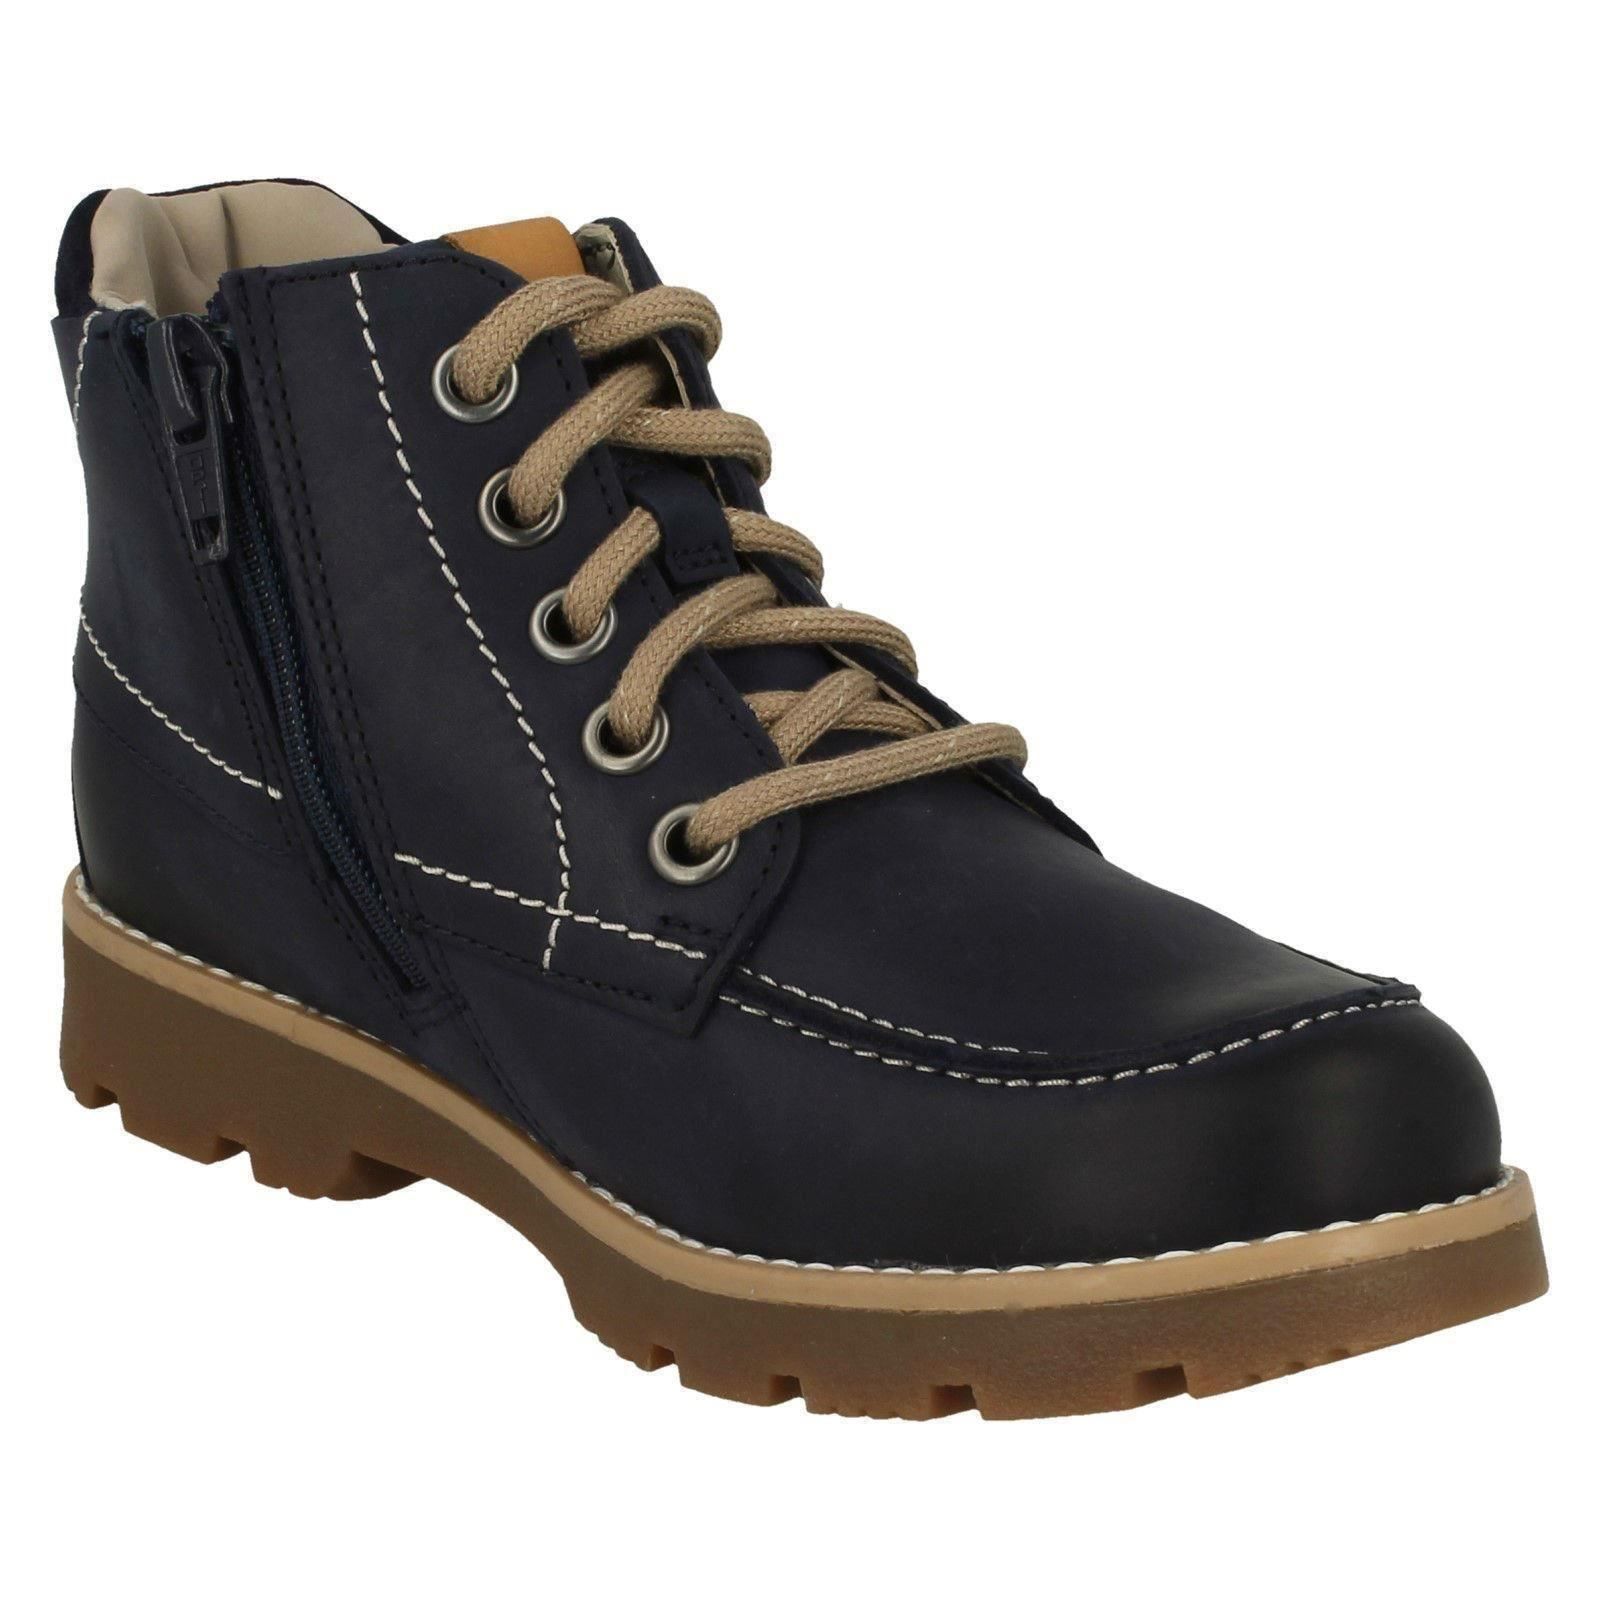 Boys Clarks Casual Lace-Up Detailed Boots Comet Moon